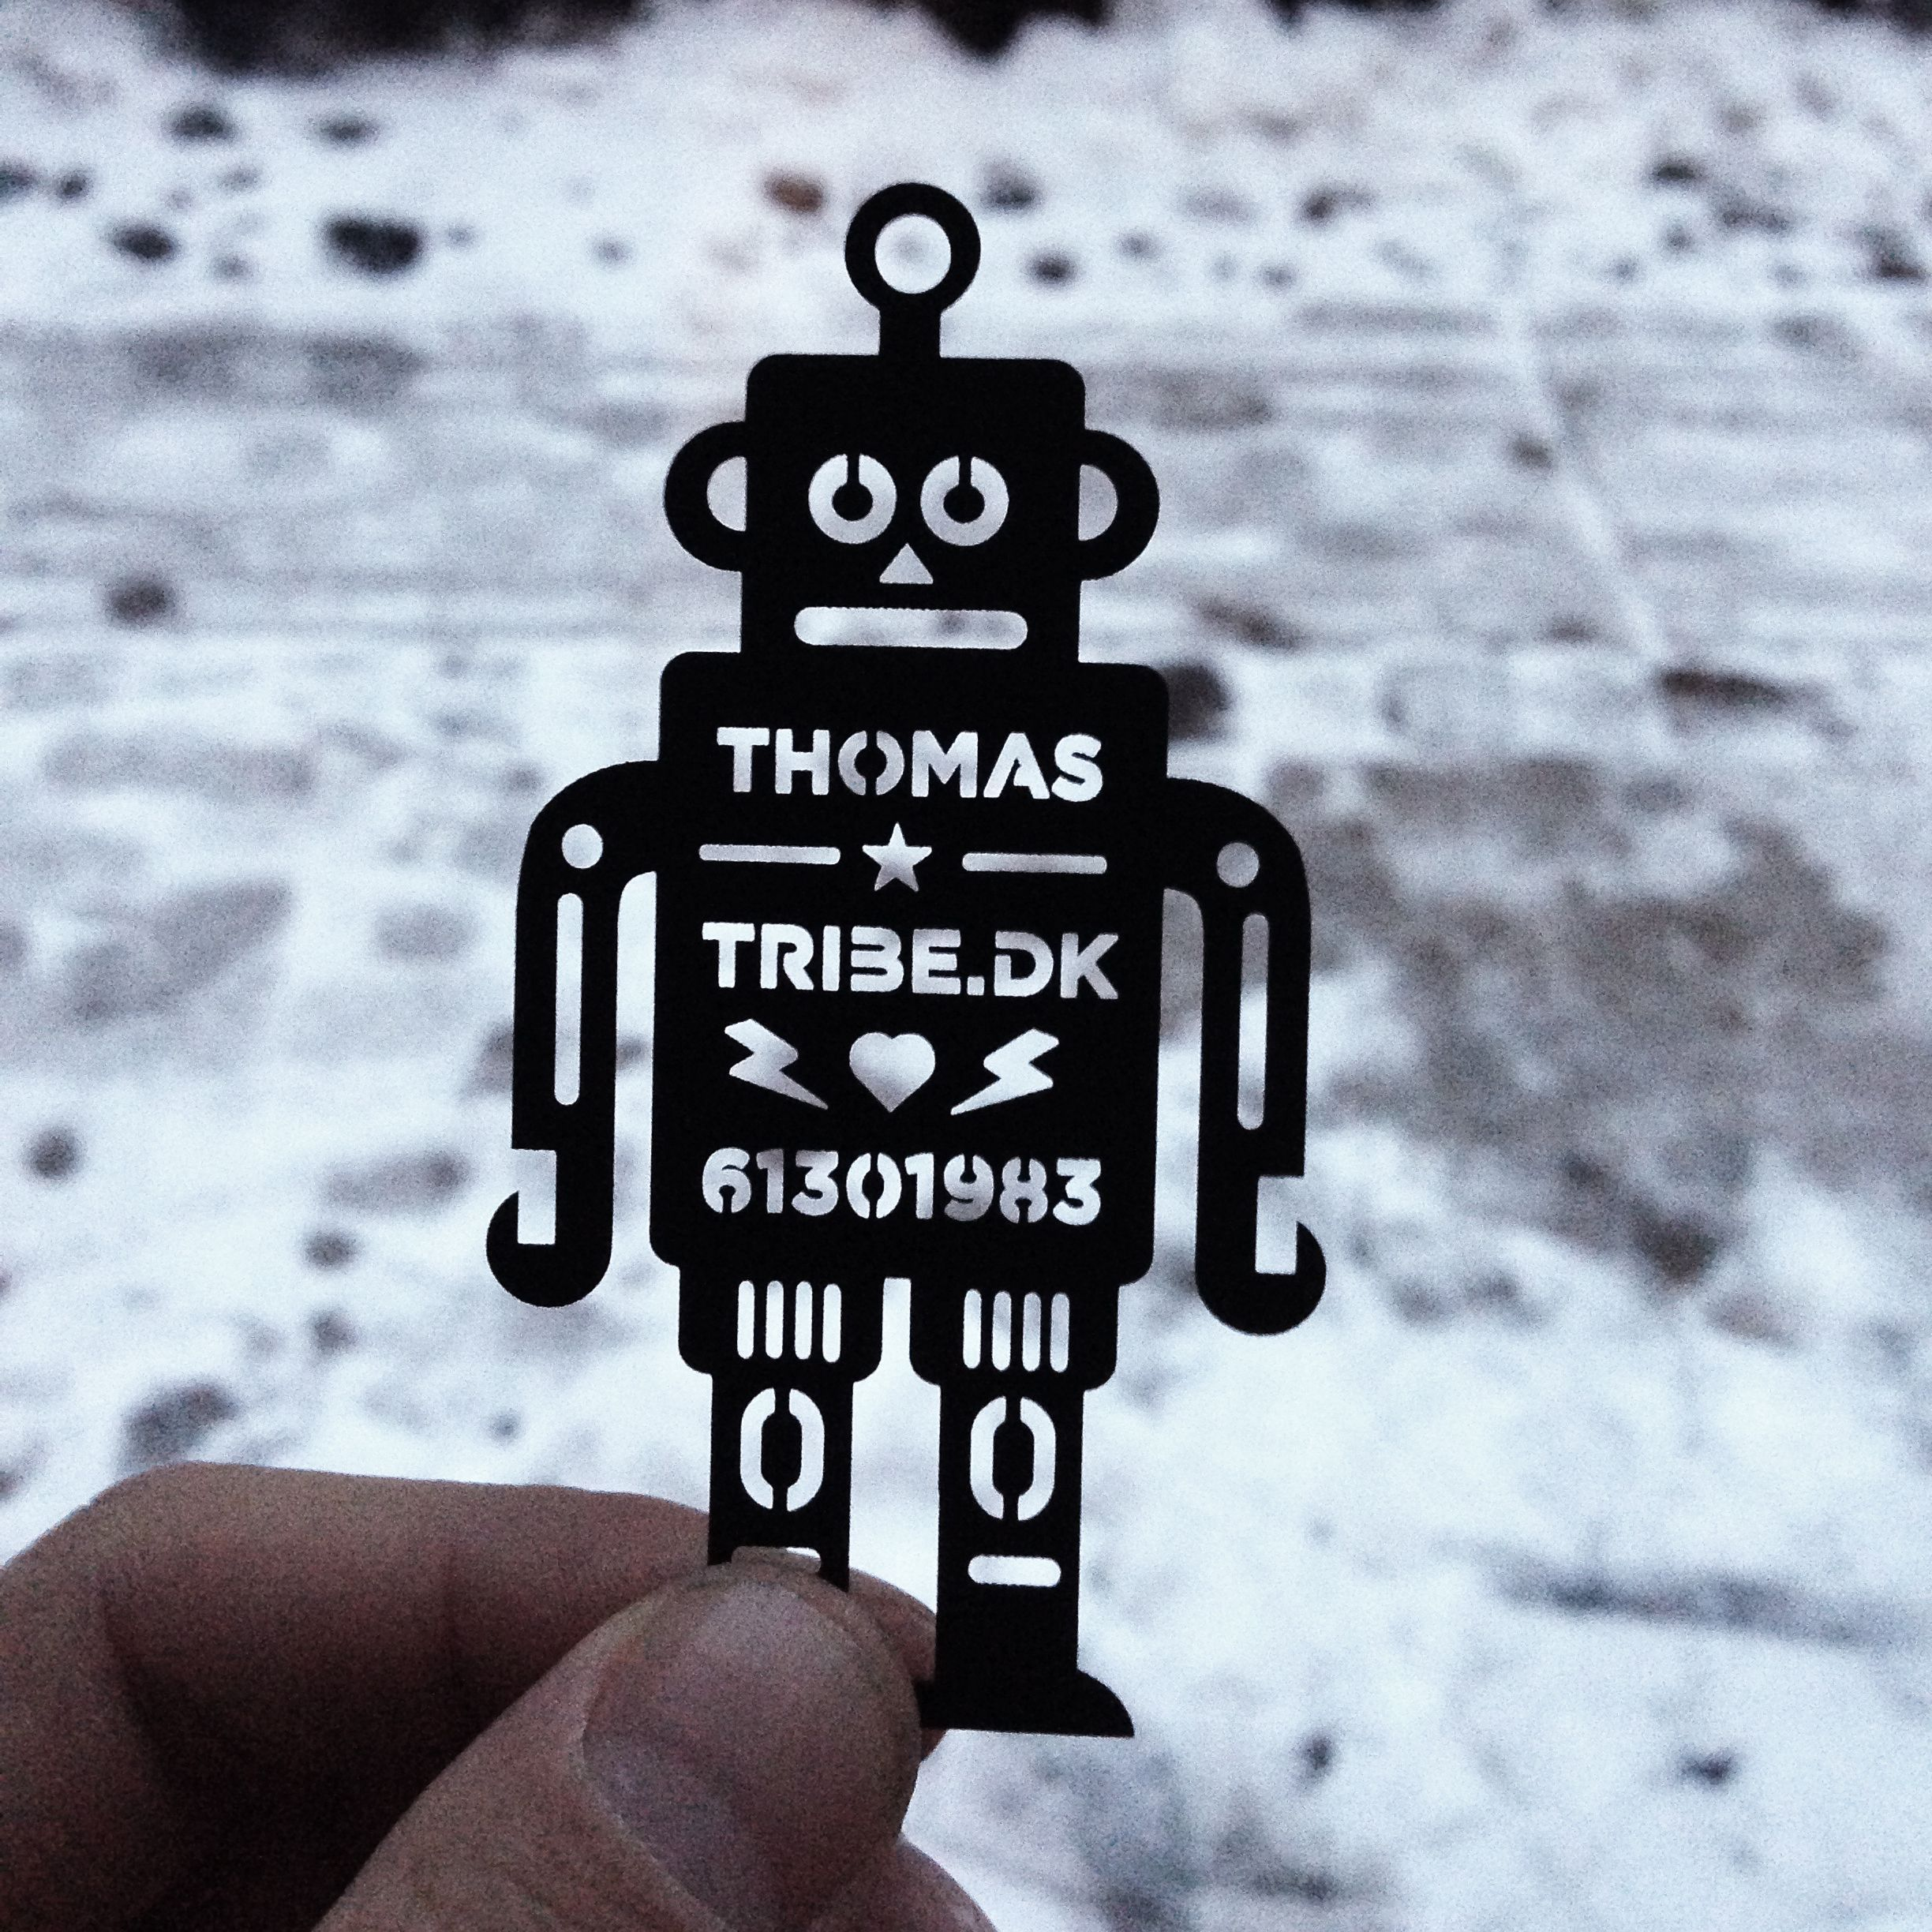 Made A Laser Cut Robot Business Card Just For Fun And A Little Self